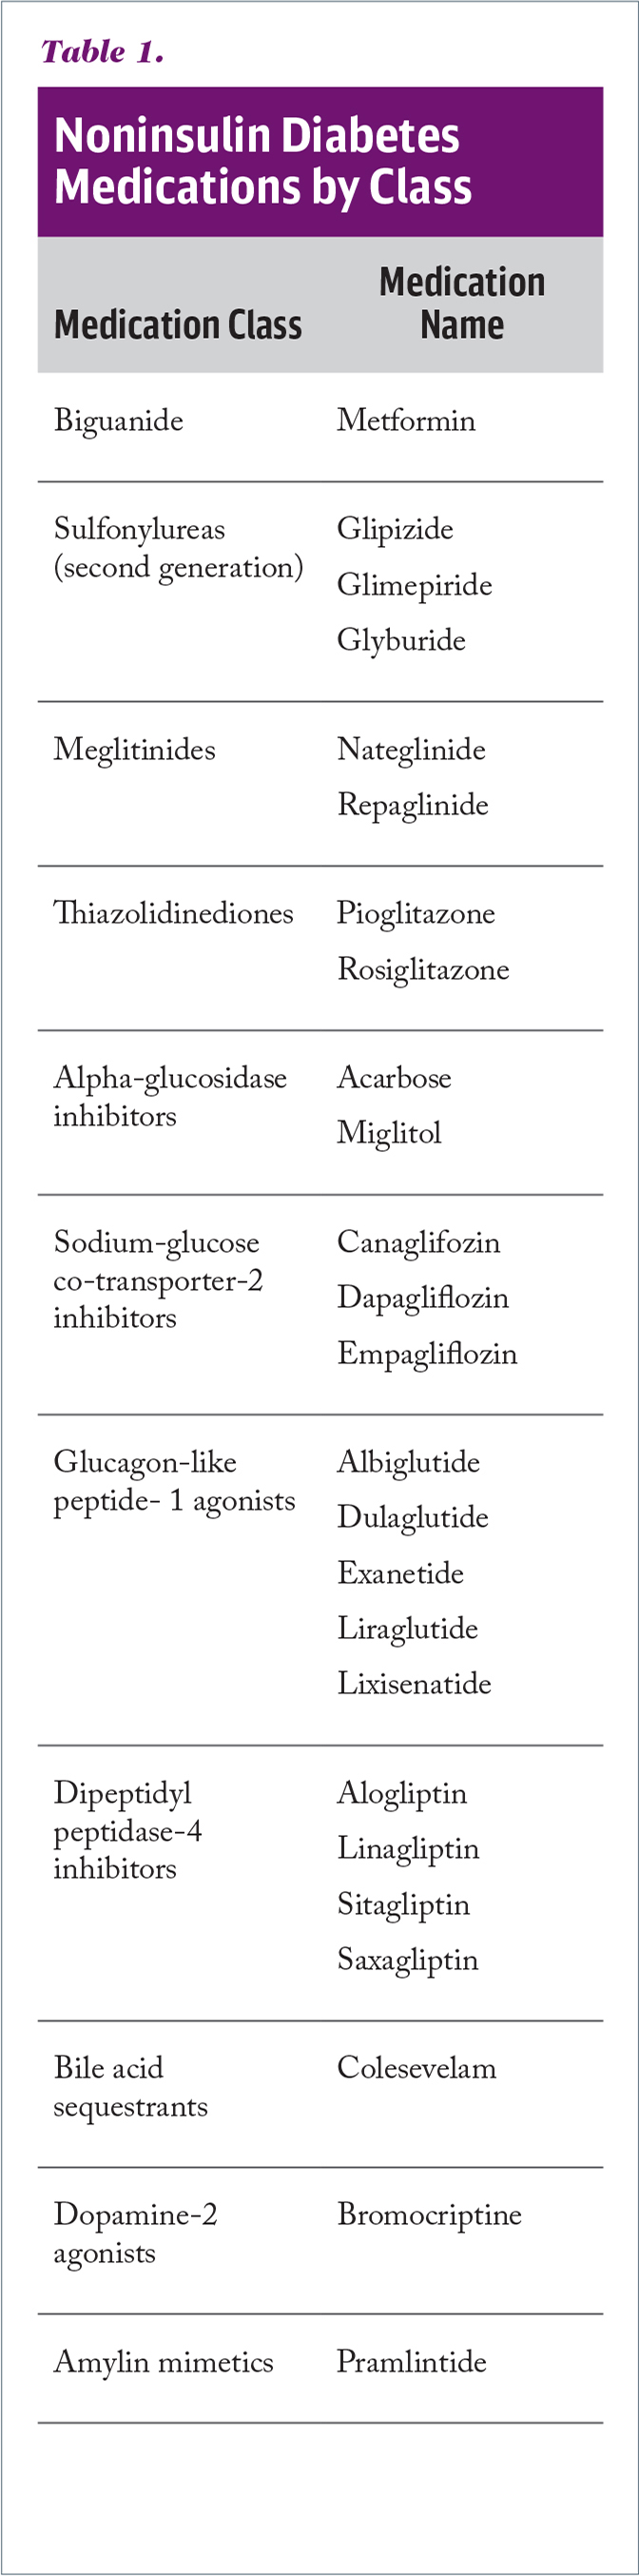 Noninsulin Diabetes Medications by Class